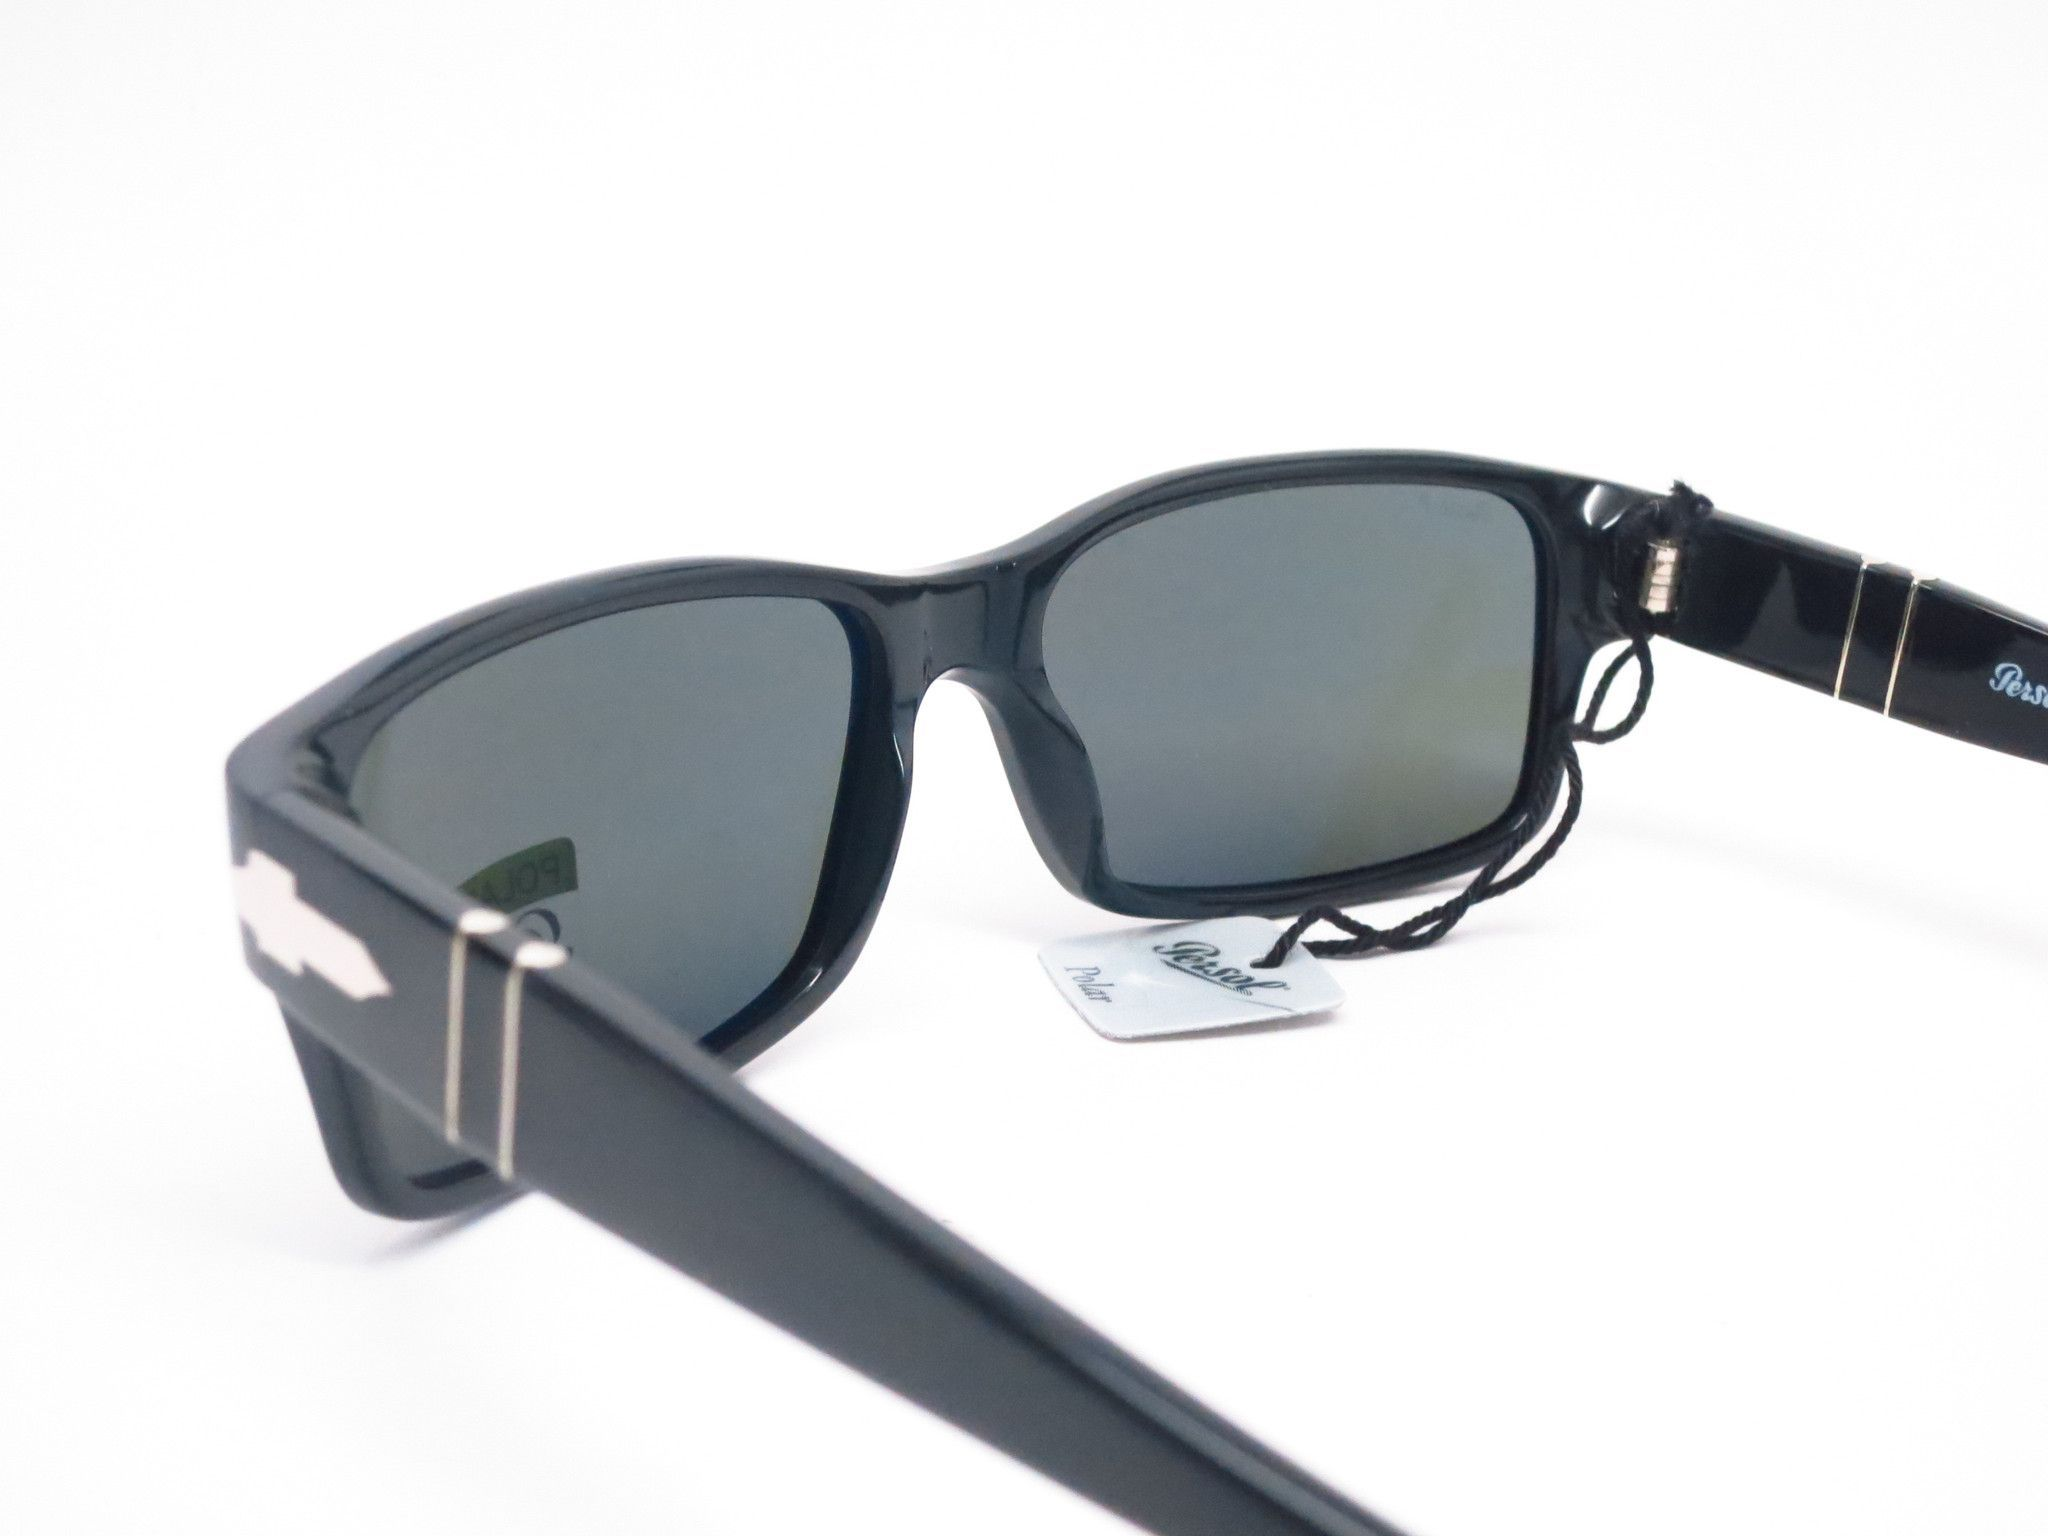 03c0a574c1 Product Details of Persol PO 2803S Sunglasses Brand   Persol Model Name   PO  2803S Color